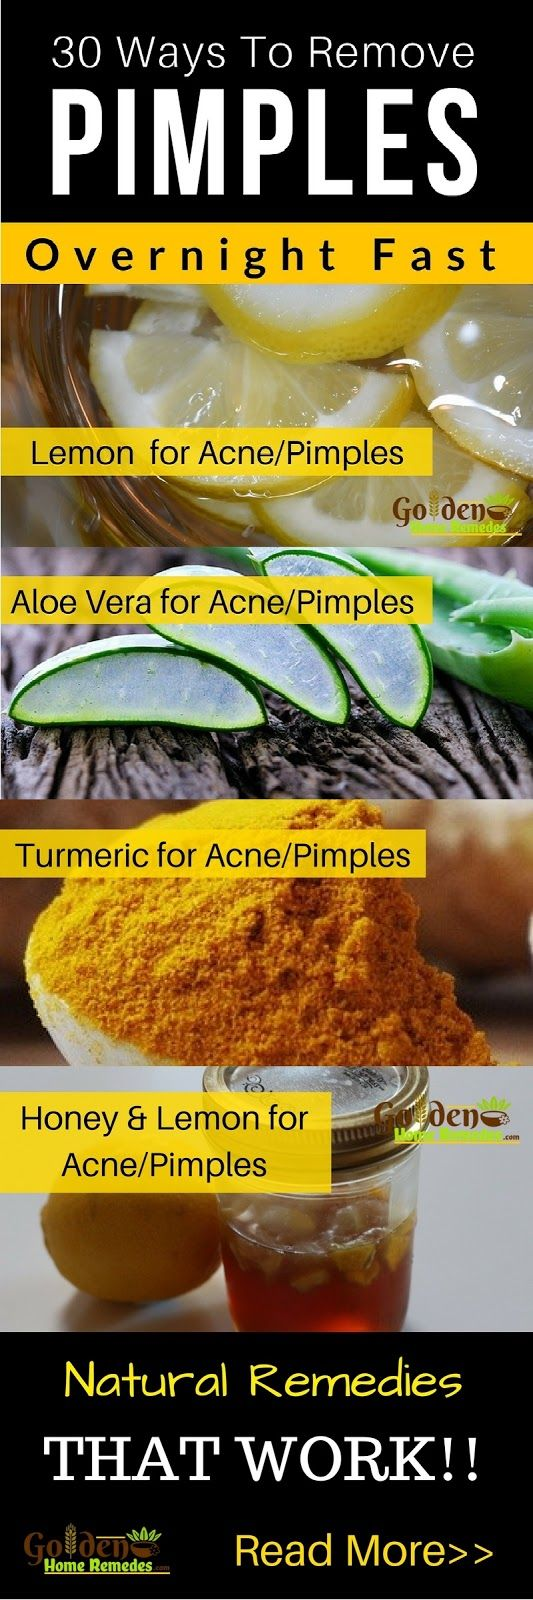 Pimples, Acne Treatment, 30 Natural Remedies To Get Rid Of Pimples Overnight Fast, Home Remedies For Pimples, Pimples Causes and Symptoms, Pimples Treatment, Pimples can occur on the face, neck, back, and shoulders which make us feel bad or self-conscious. Trying natural ingredients for removing pimples from skin has proved to be very helpful. We have come up with 30 do-it-yourself natural home remedies that will help remove pimples with minimal side effects. Read More...